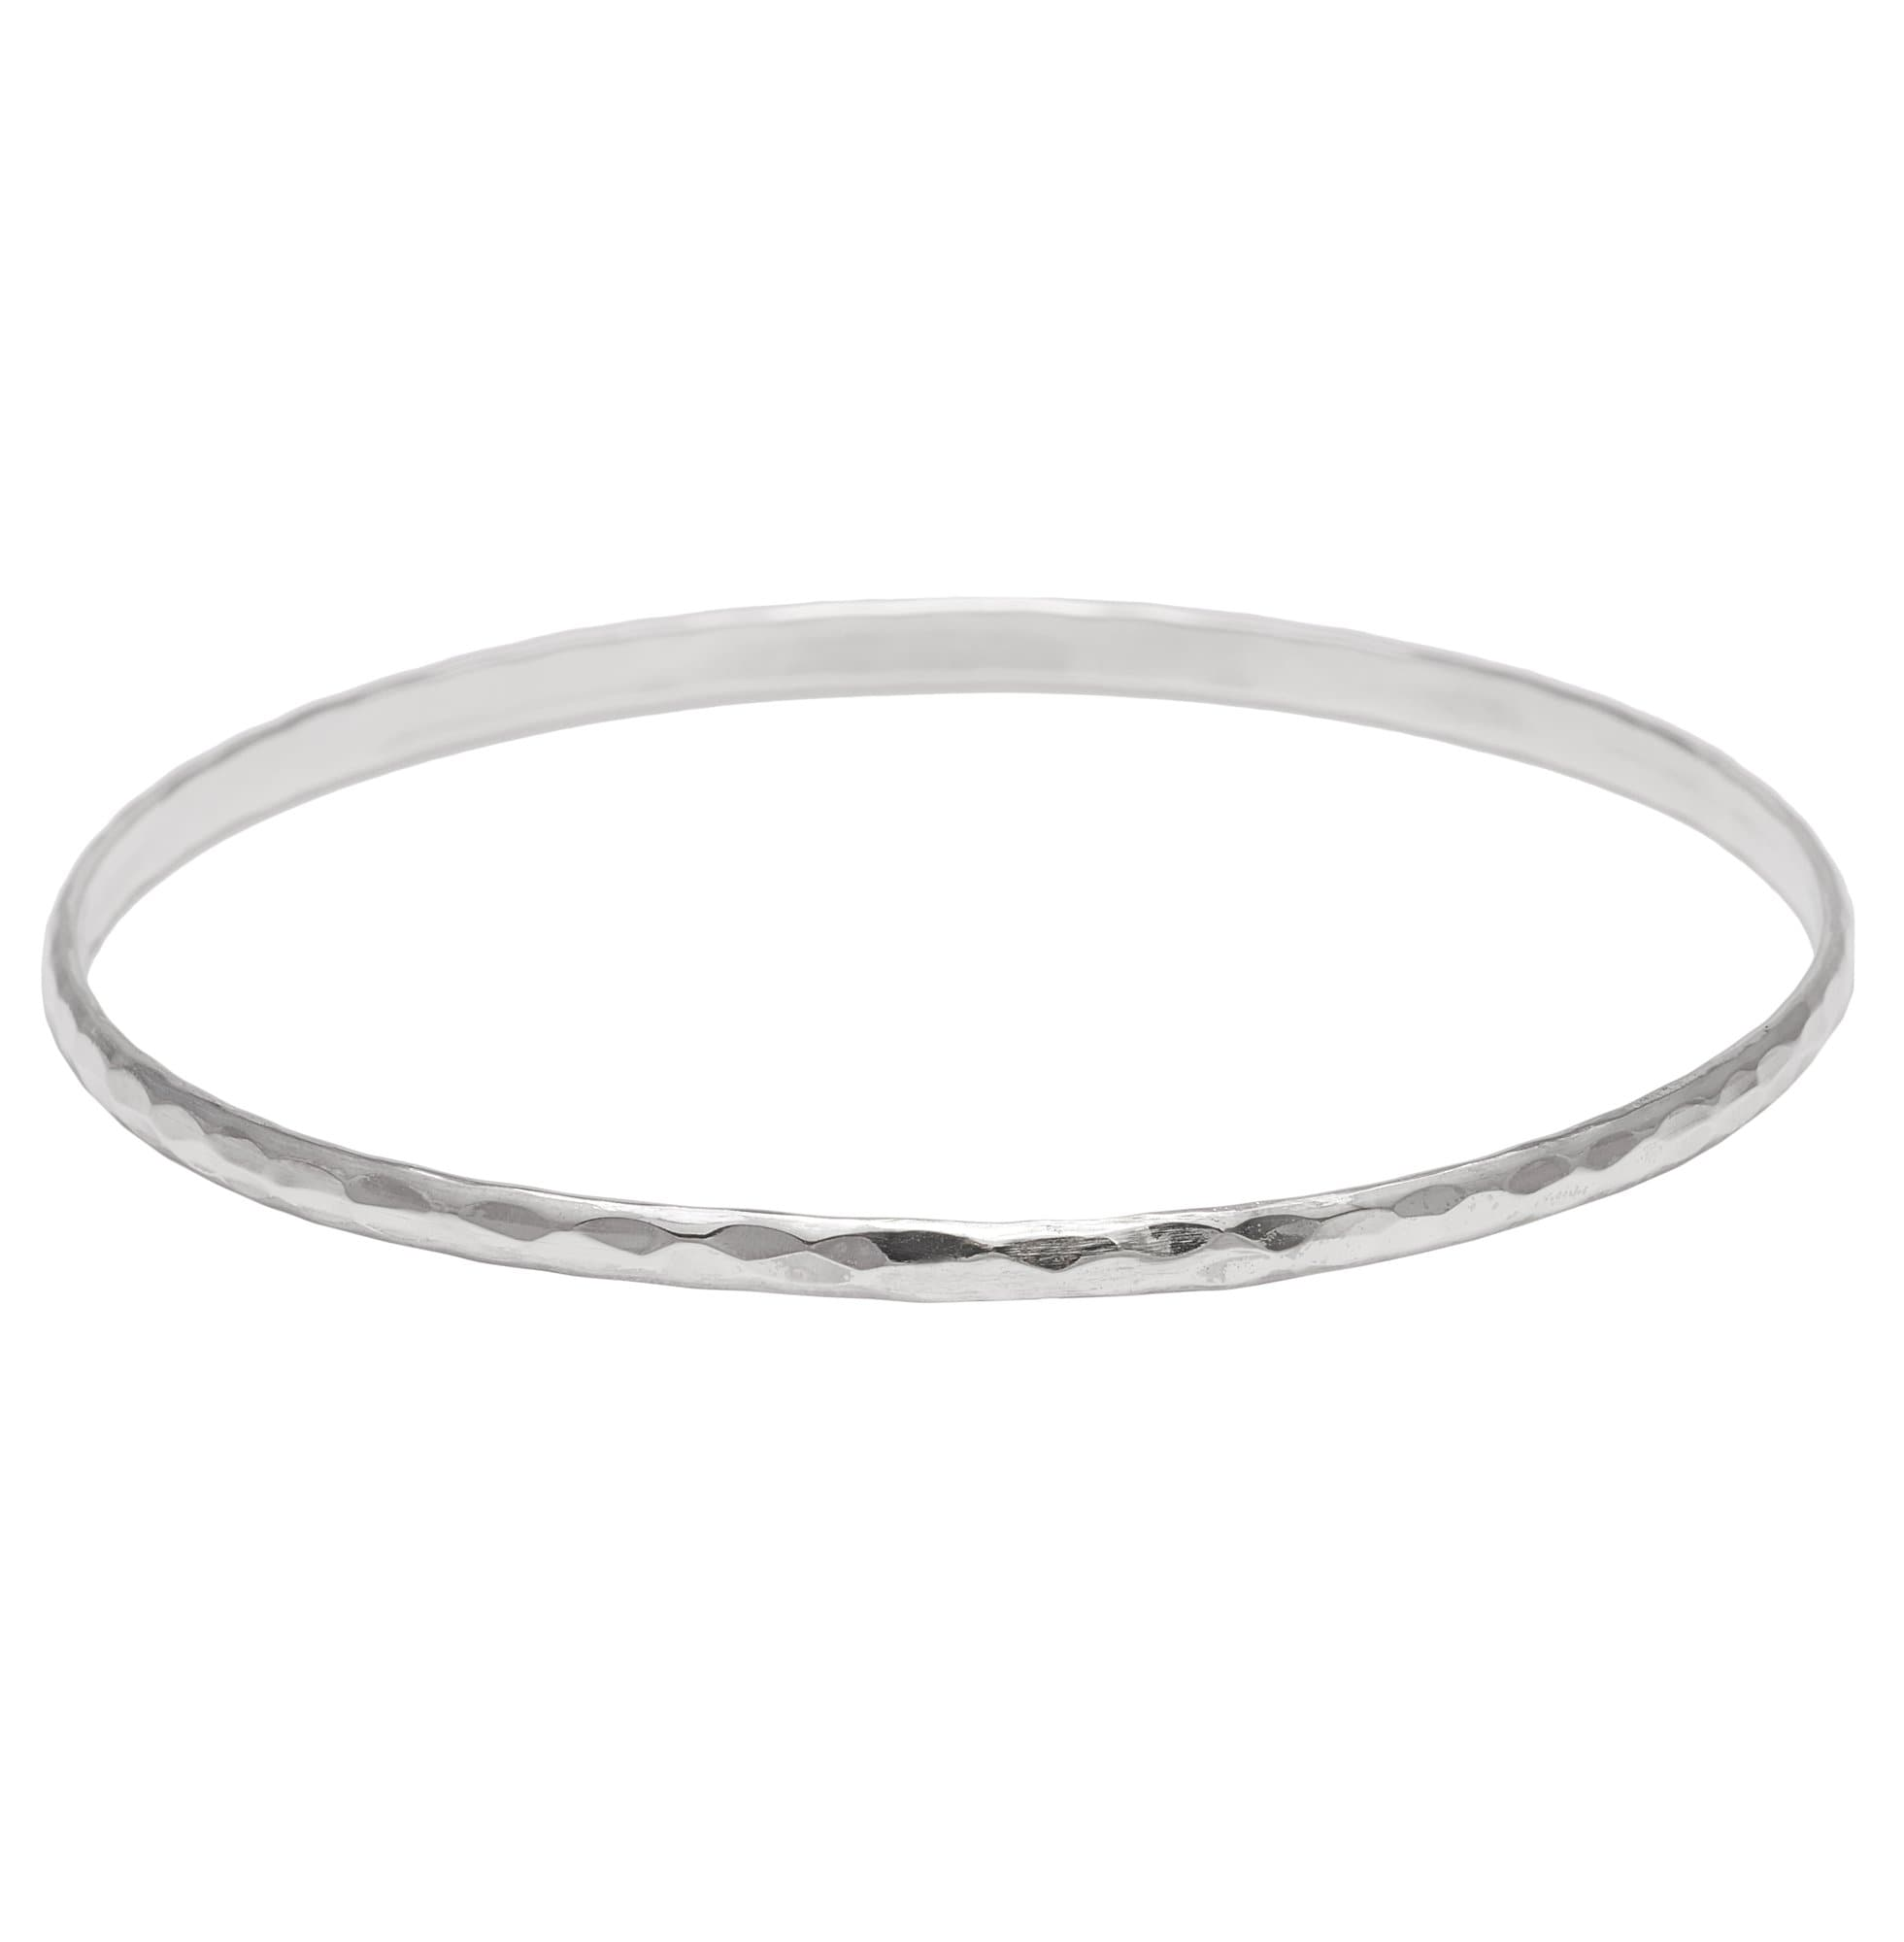 bangle indonesia high design plain bangles jewelry in shipping silver circumference moonlight polish bracelets balinese free watches bracelet product sterling womens today inner